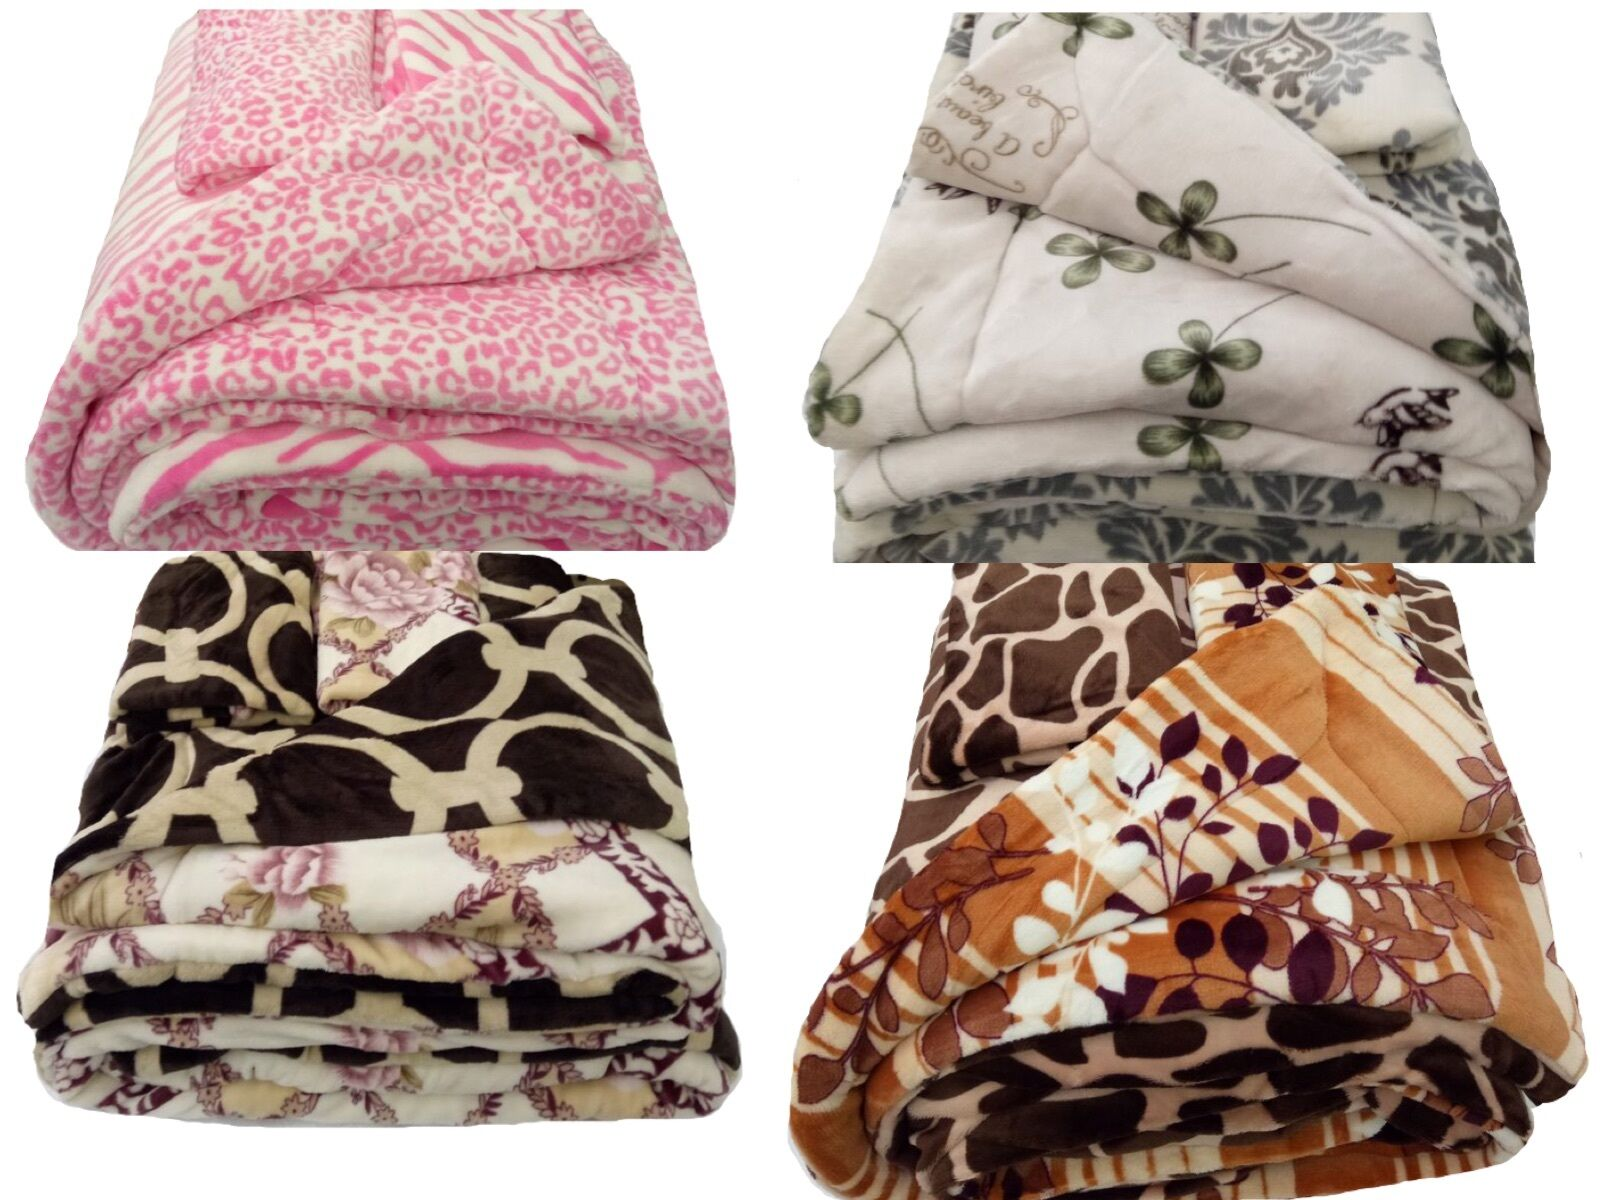 3 PC REVERSIBLE Super Soft Plush Blanket Set! Blanket + 2Pil